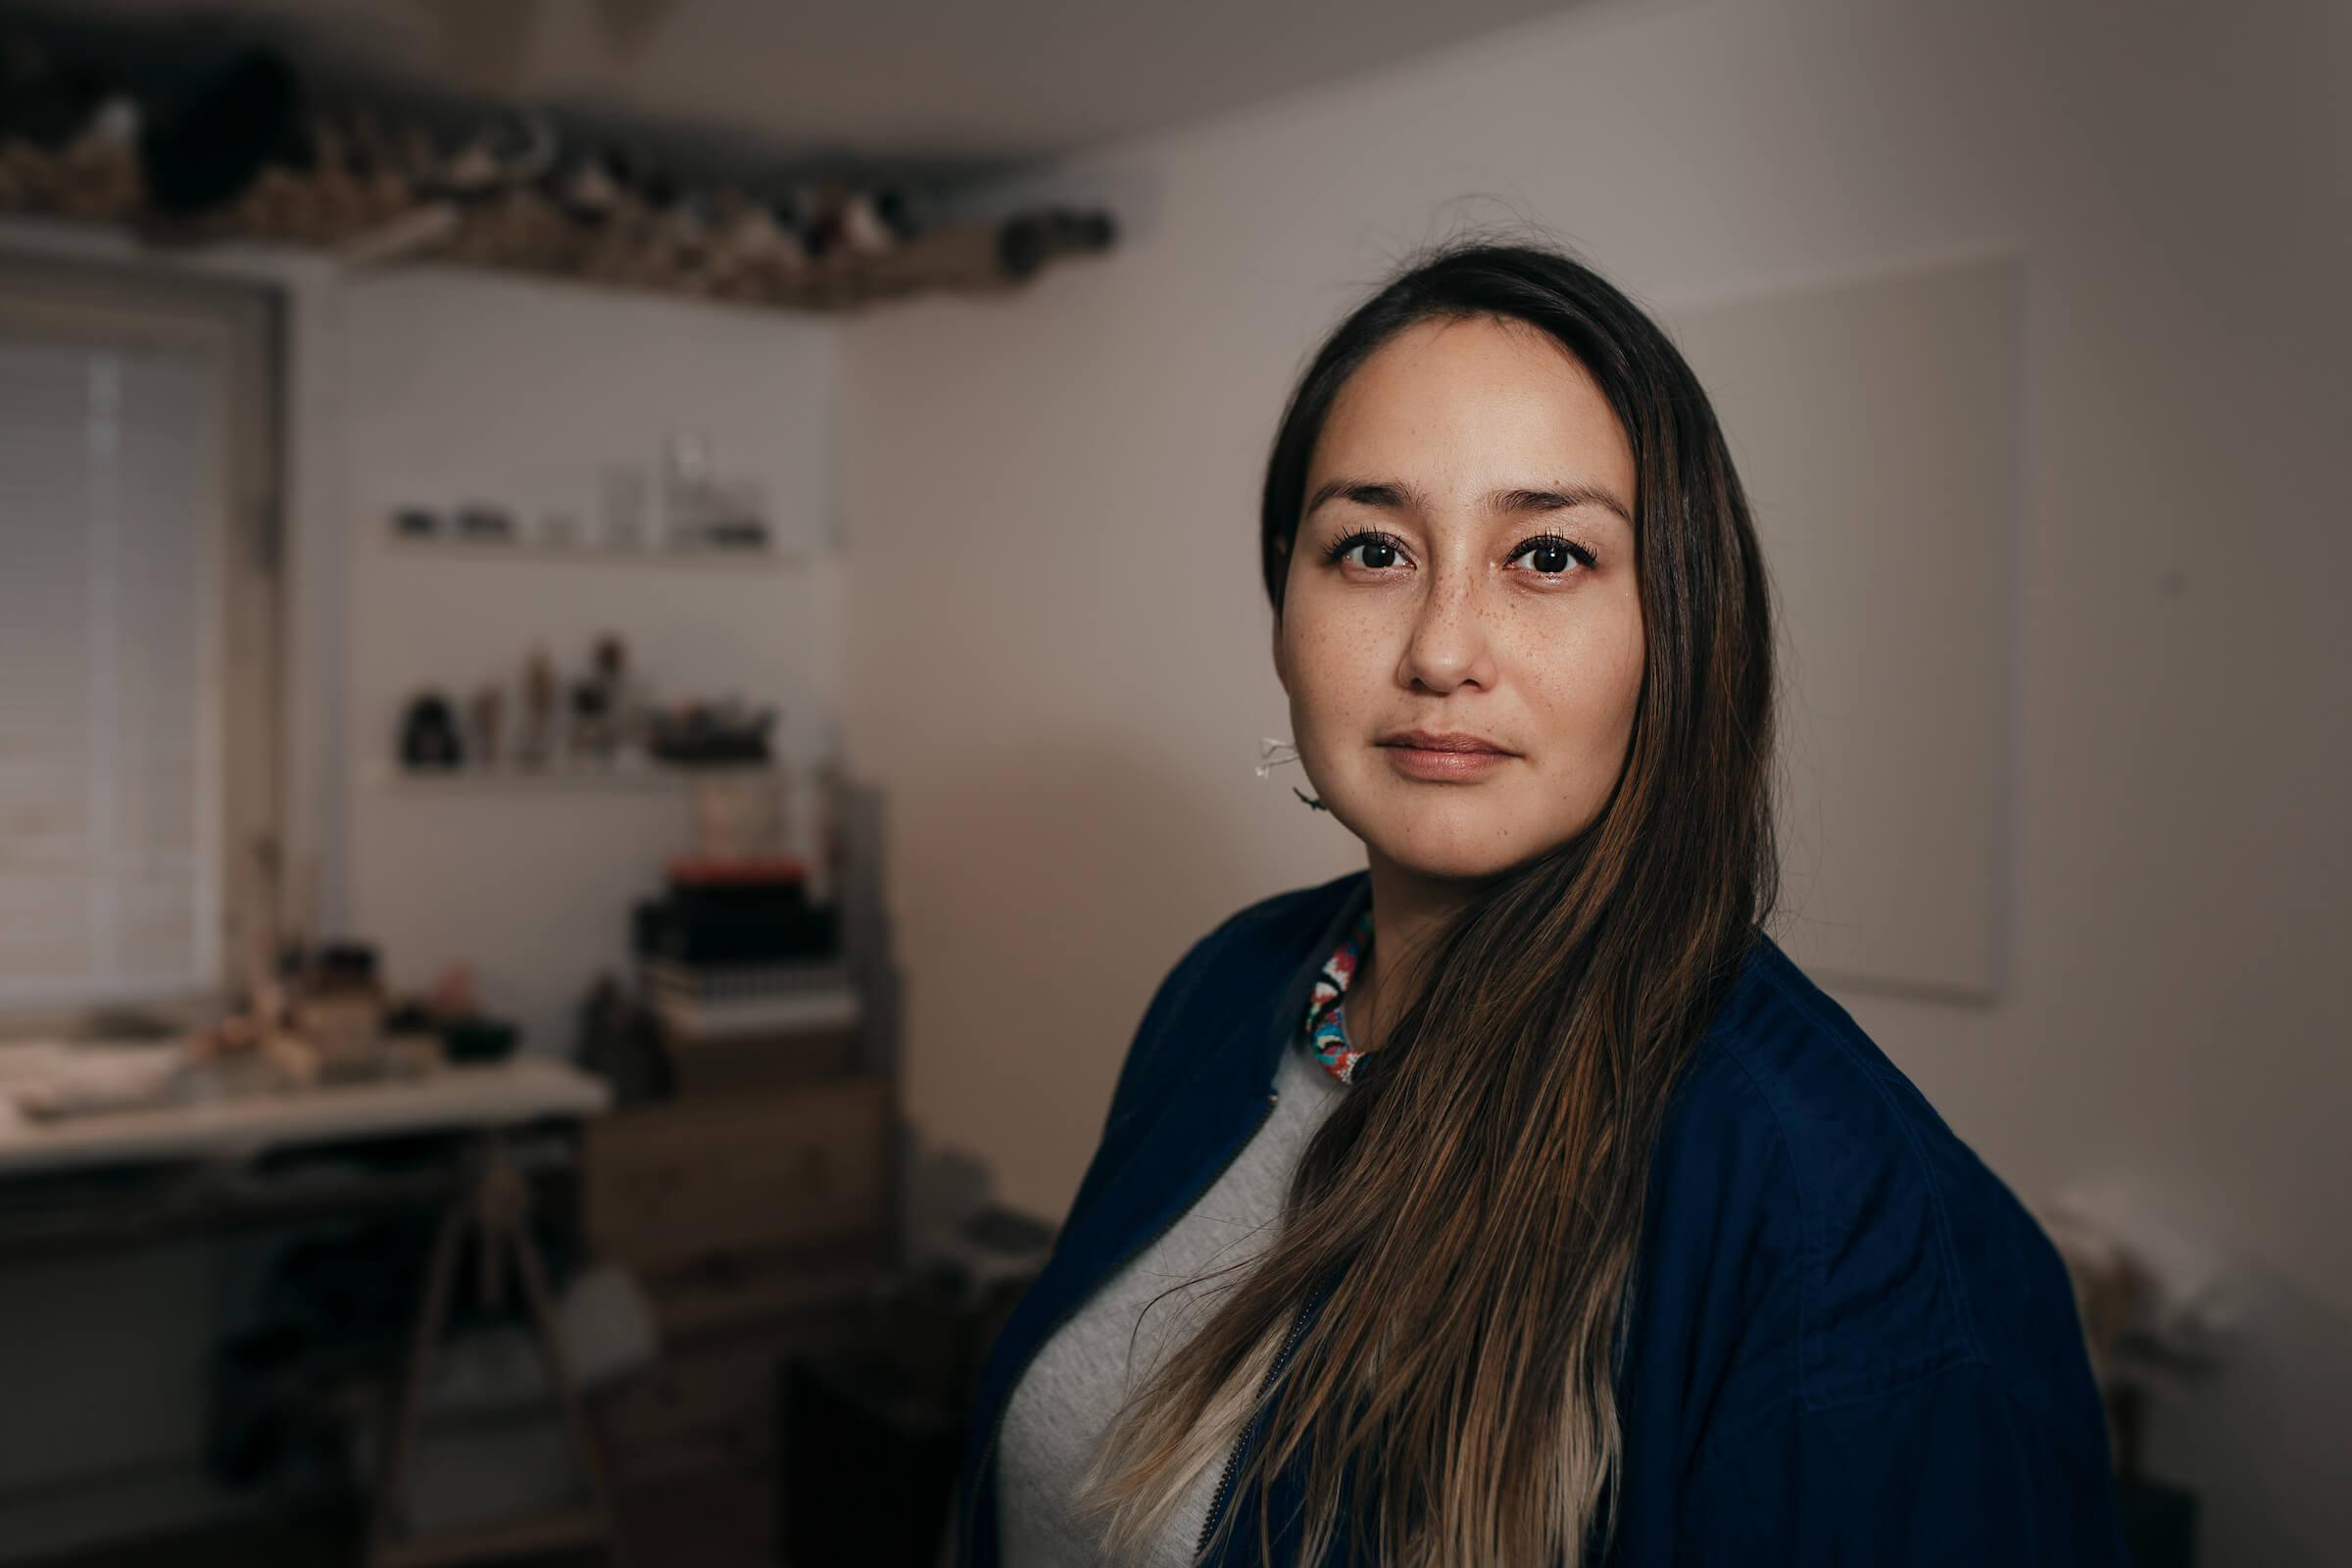 portrait of the greenlandic artist lisbeth karline poulsen in her rh visitgreenland com in her home country kira had Giada at Home Her House